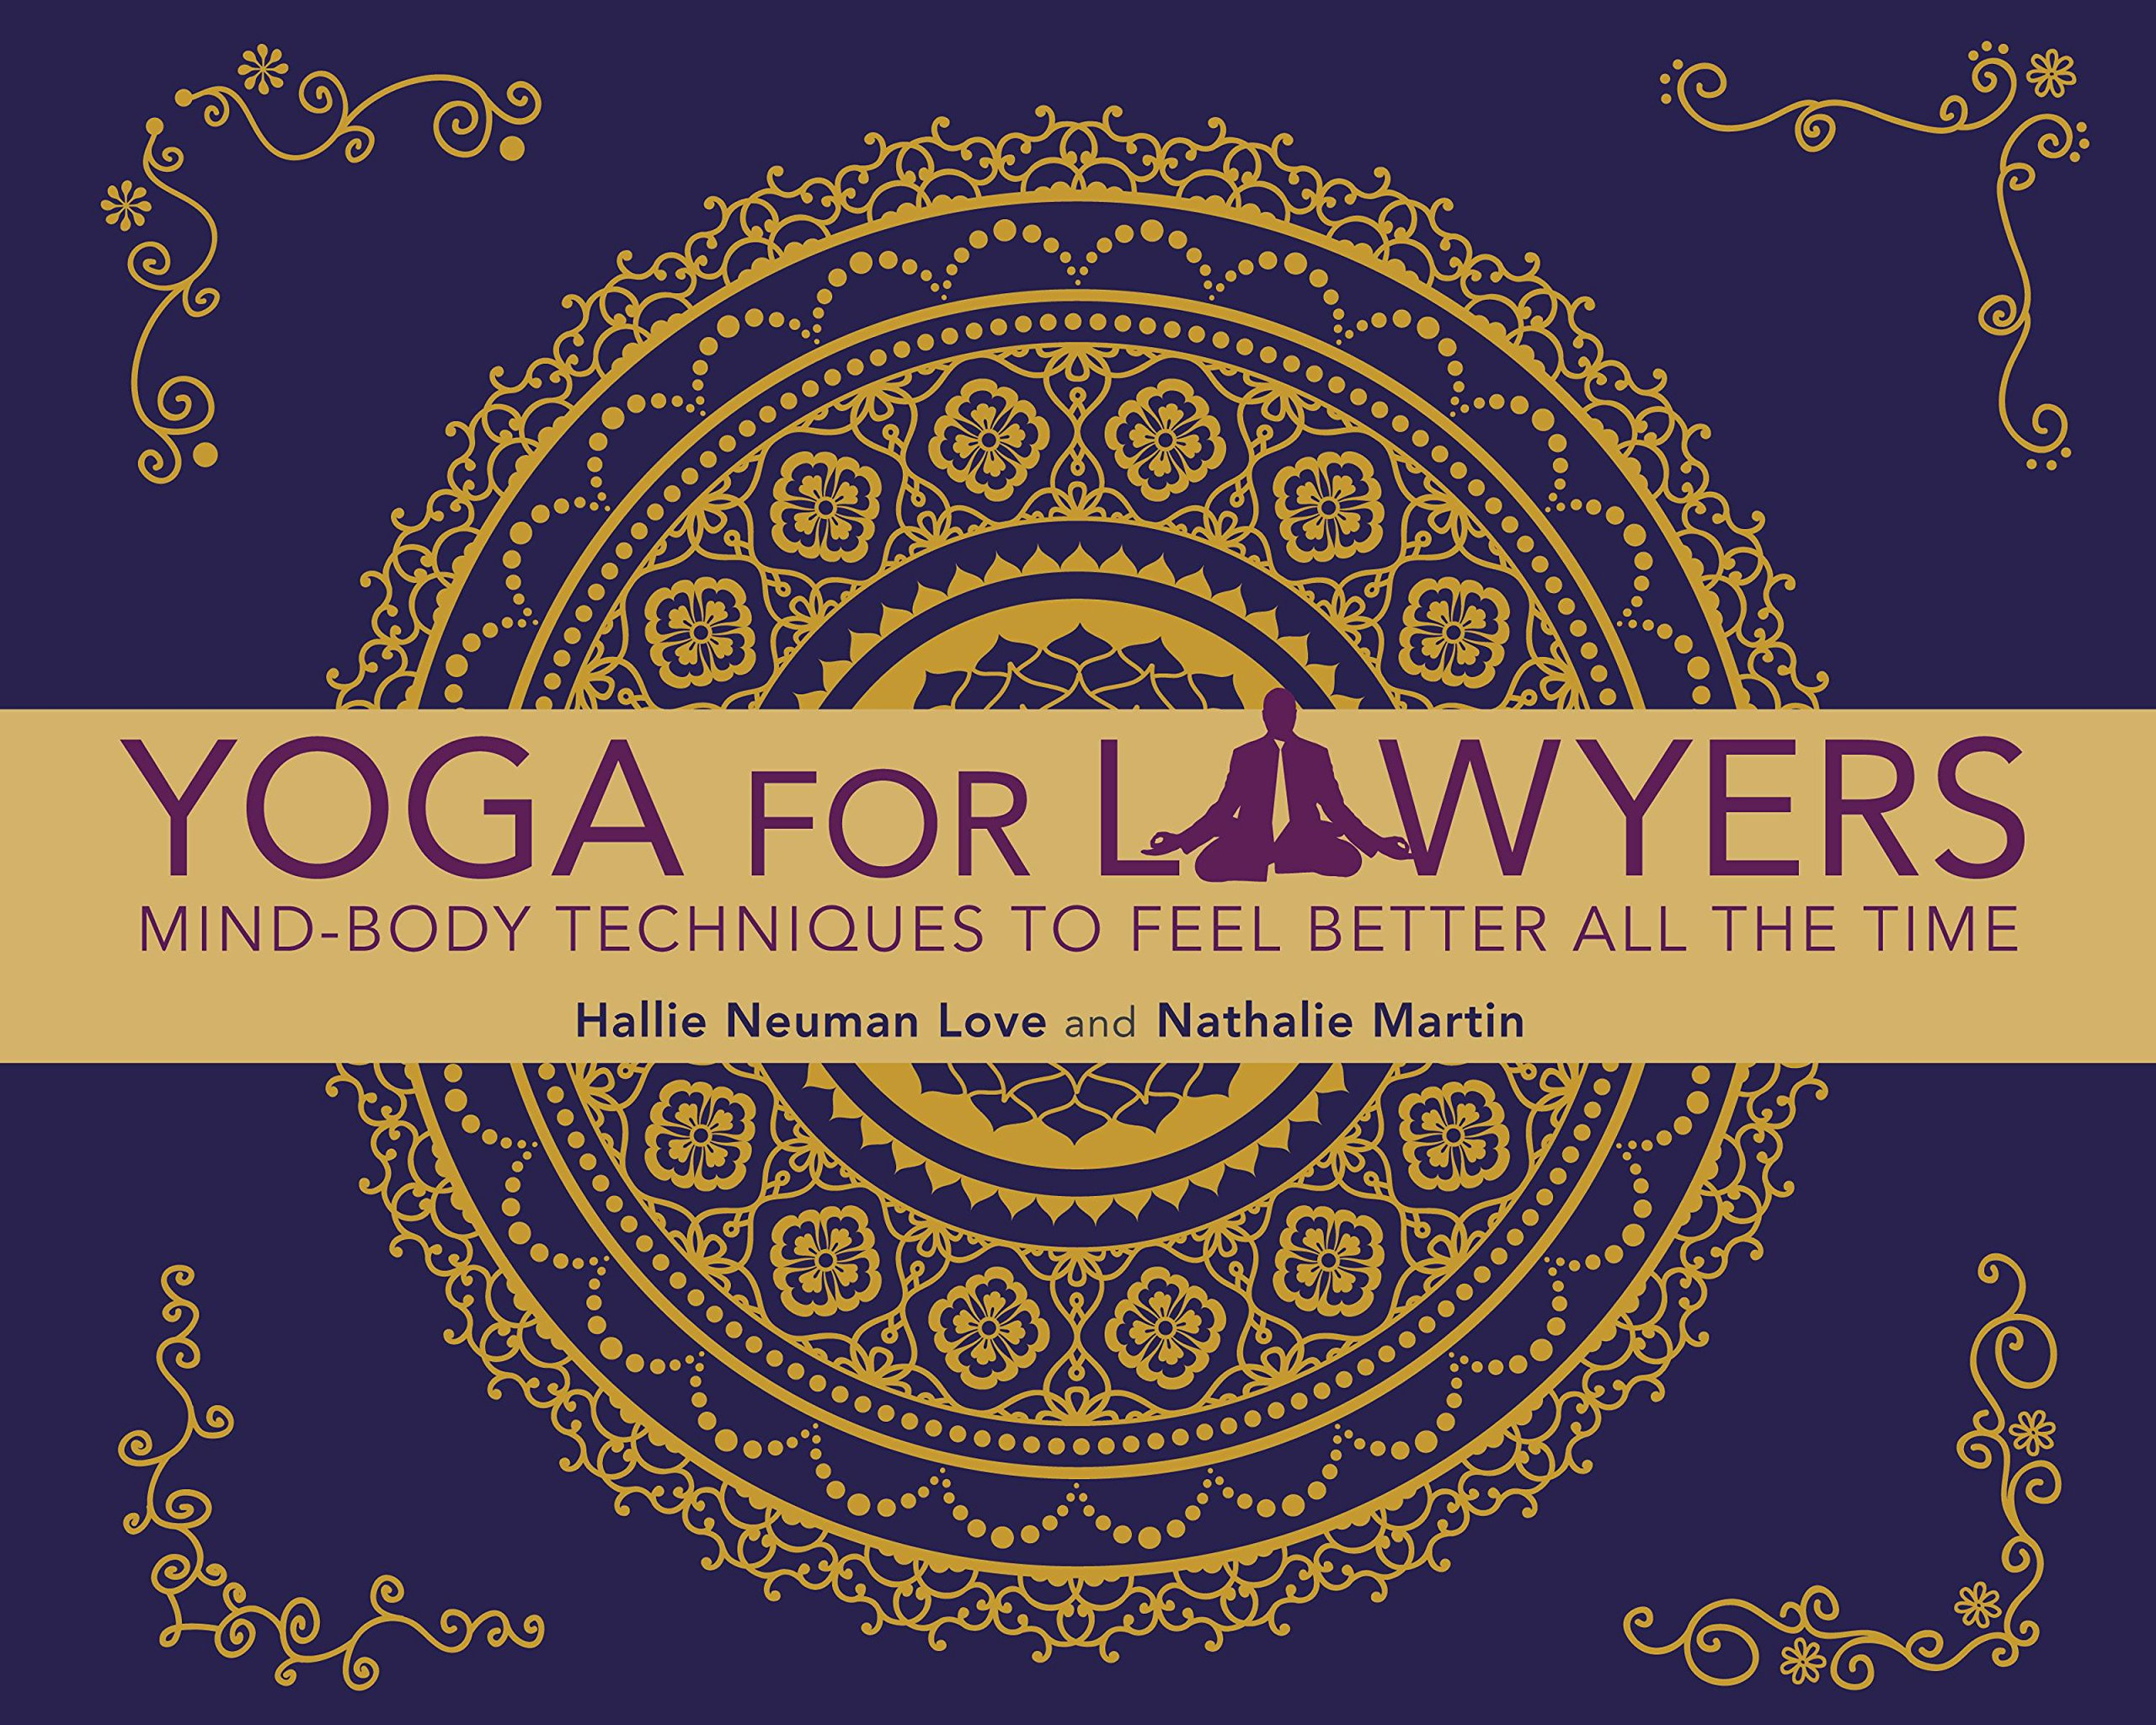 Yoga for Lawyers: Mind-Body Techniques to Feel Better All the Time Paperback – February 16, 2015 Hallie Neuman Love Nathalie Martin American Bar Association 1627225234